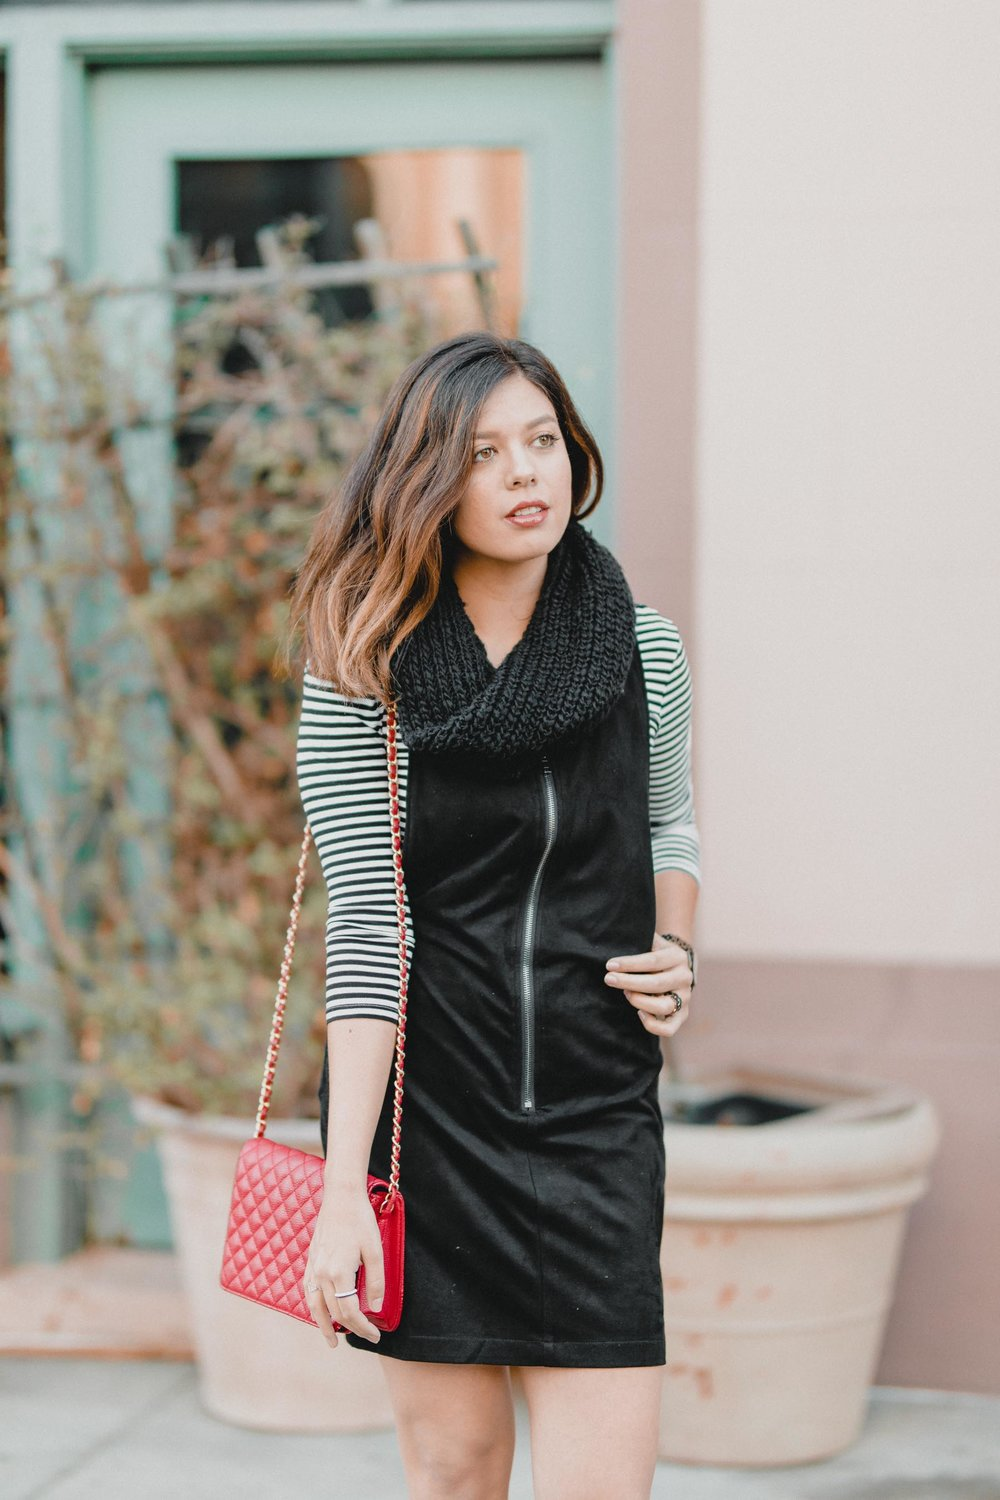 Rachel Off Duty: How to Style a Suede Dress